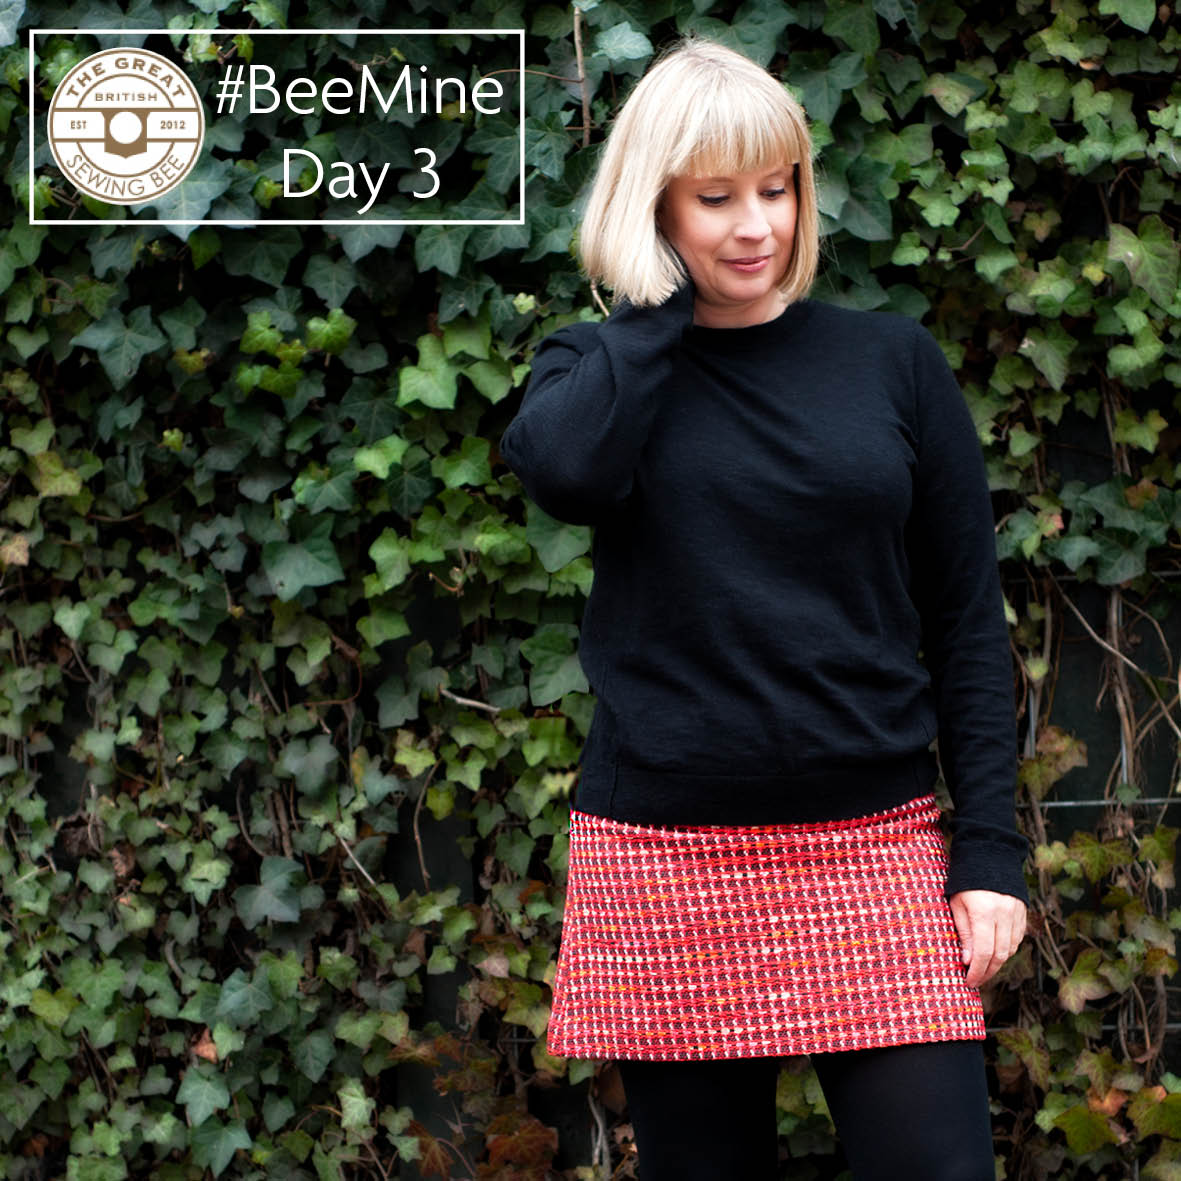 Day 3 #BeeMine- my 30 day blog challenge